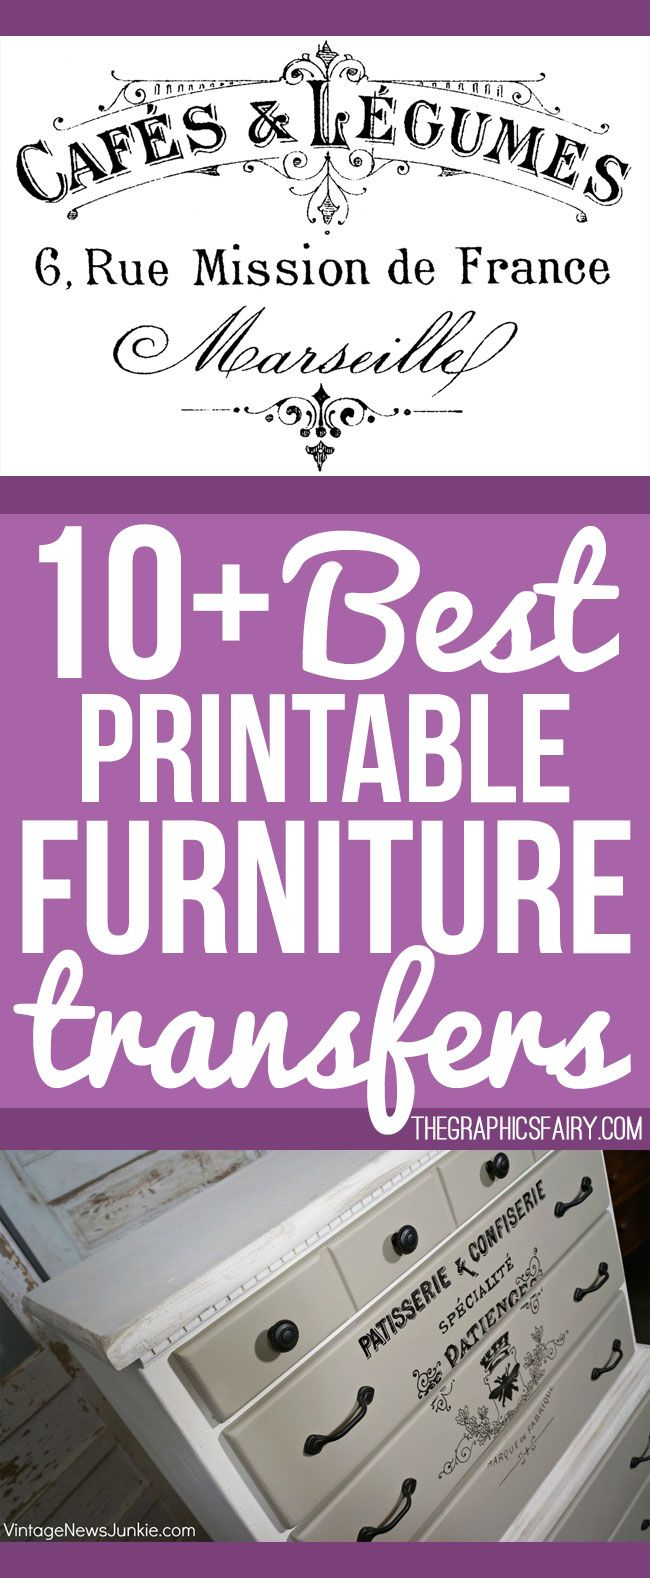 photo regarding Printable Transfers titled 10+ Least difficult Printable Transfers for Household furniture - Absolutely free